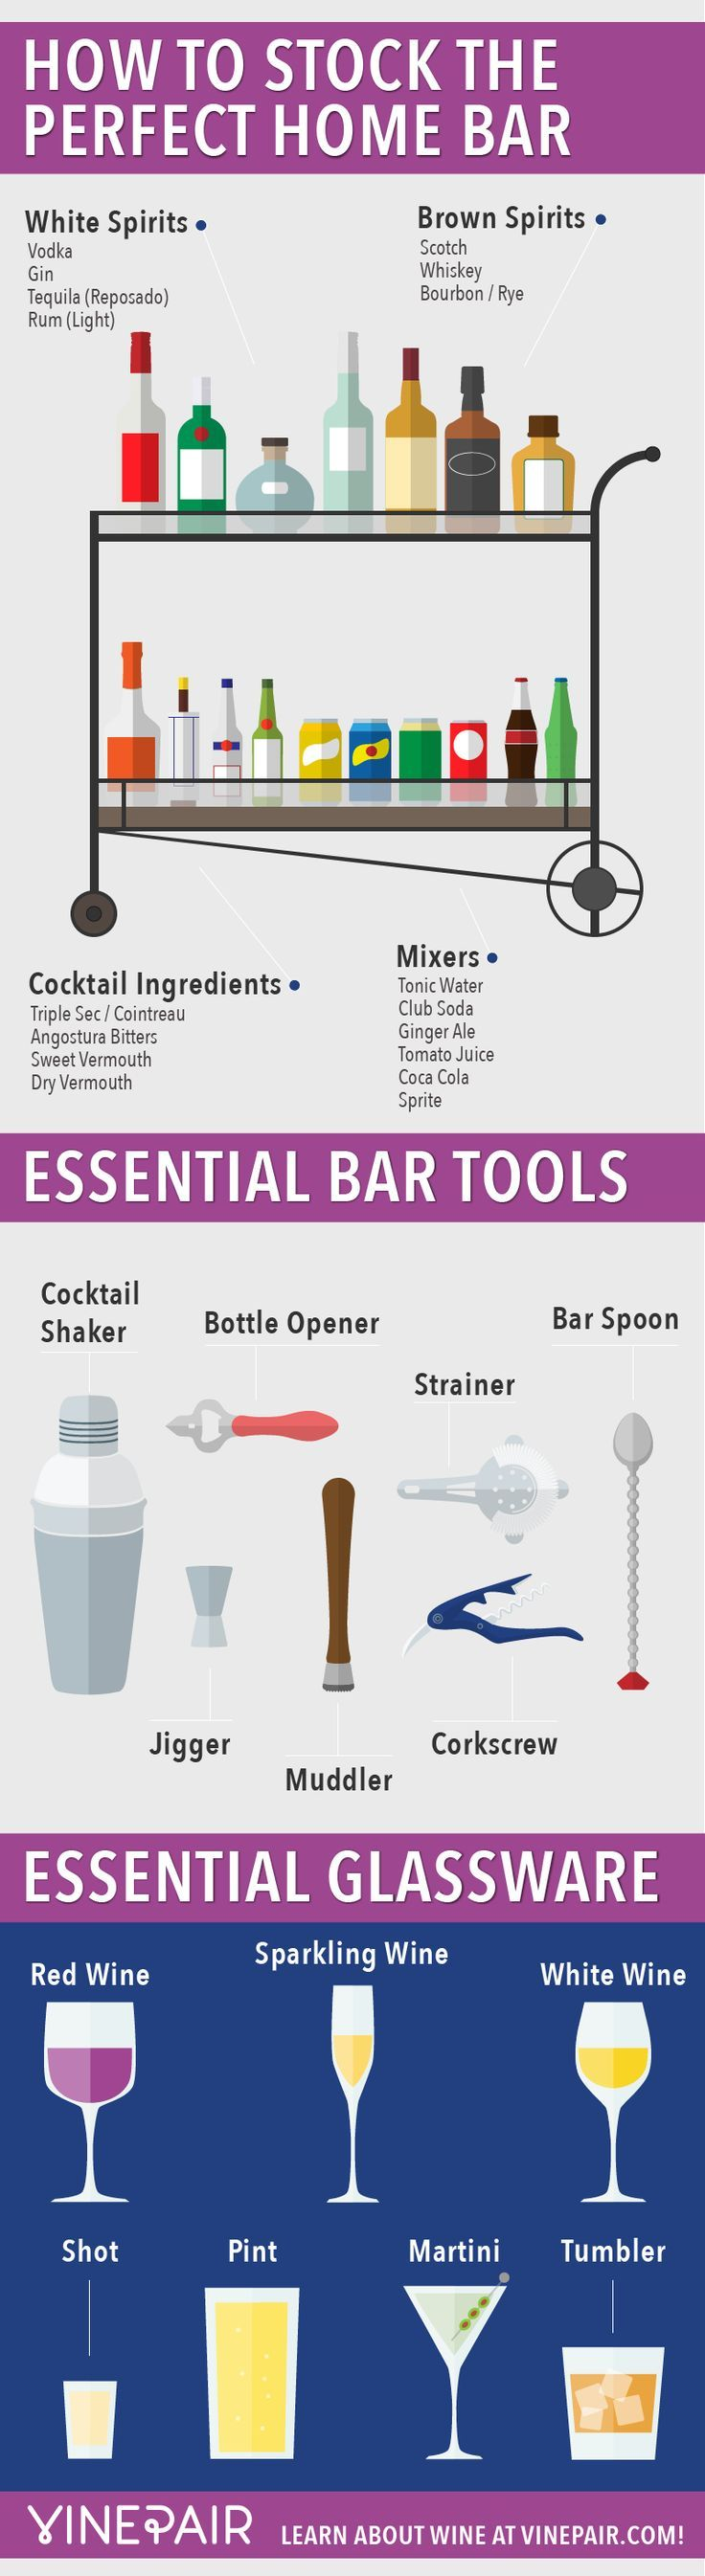 How To Stock The Perfect Home Bar: INFOGRAPHIC